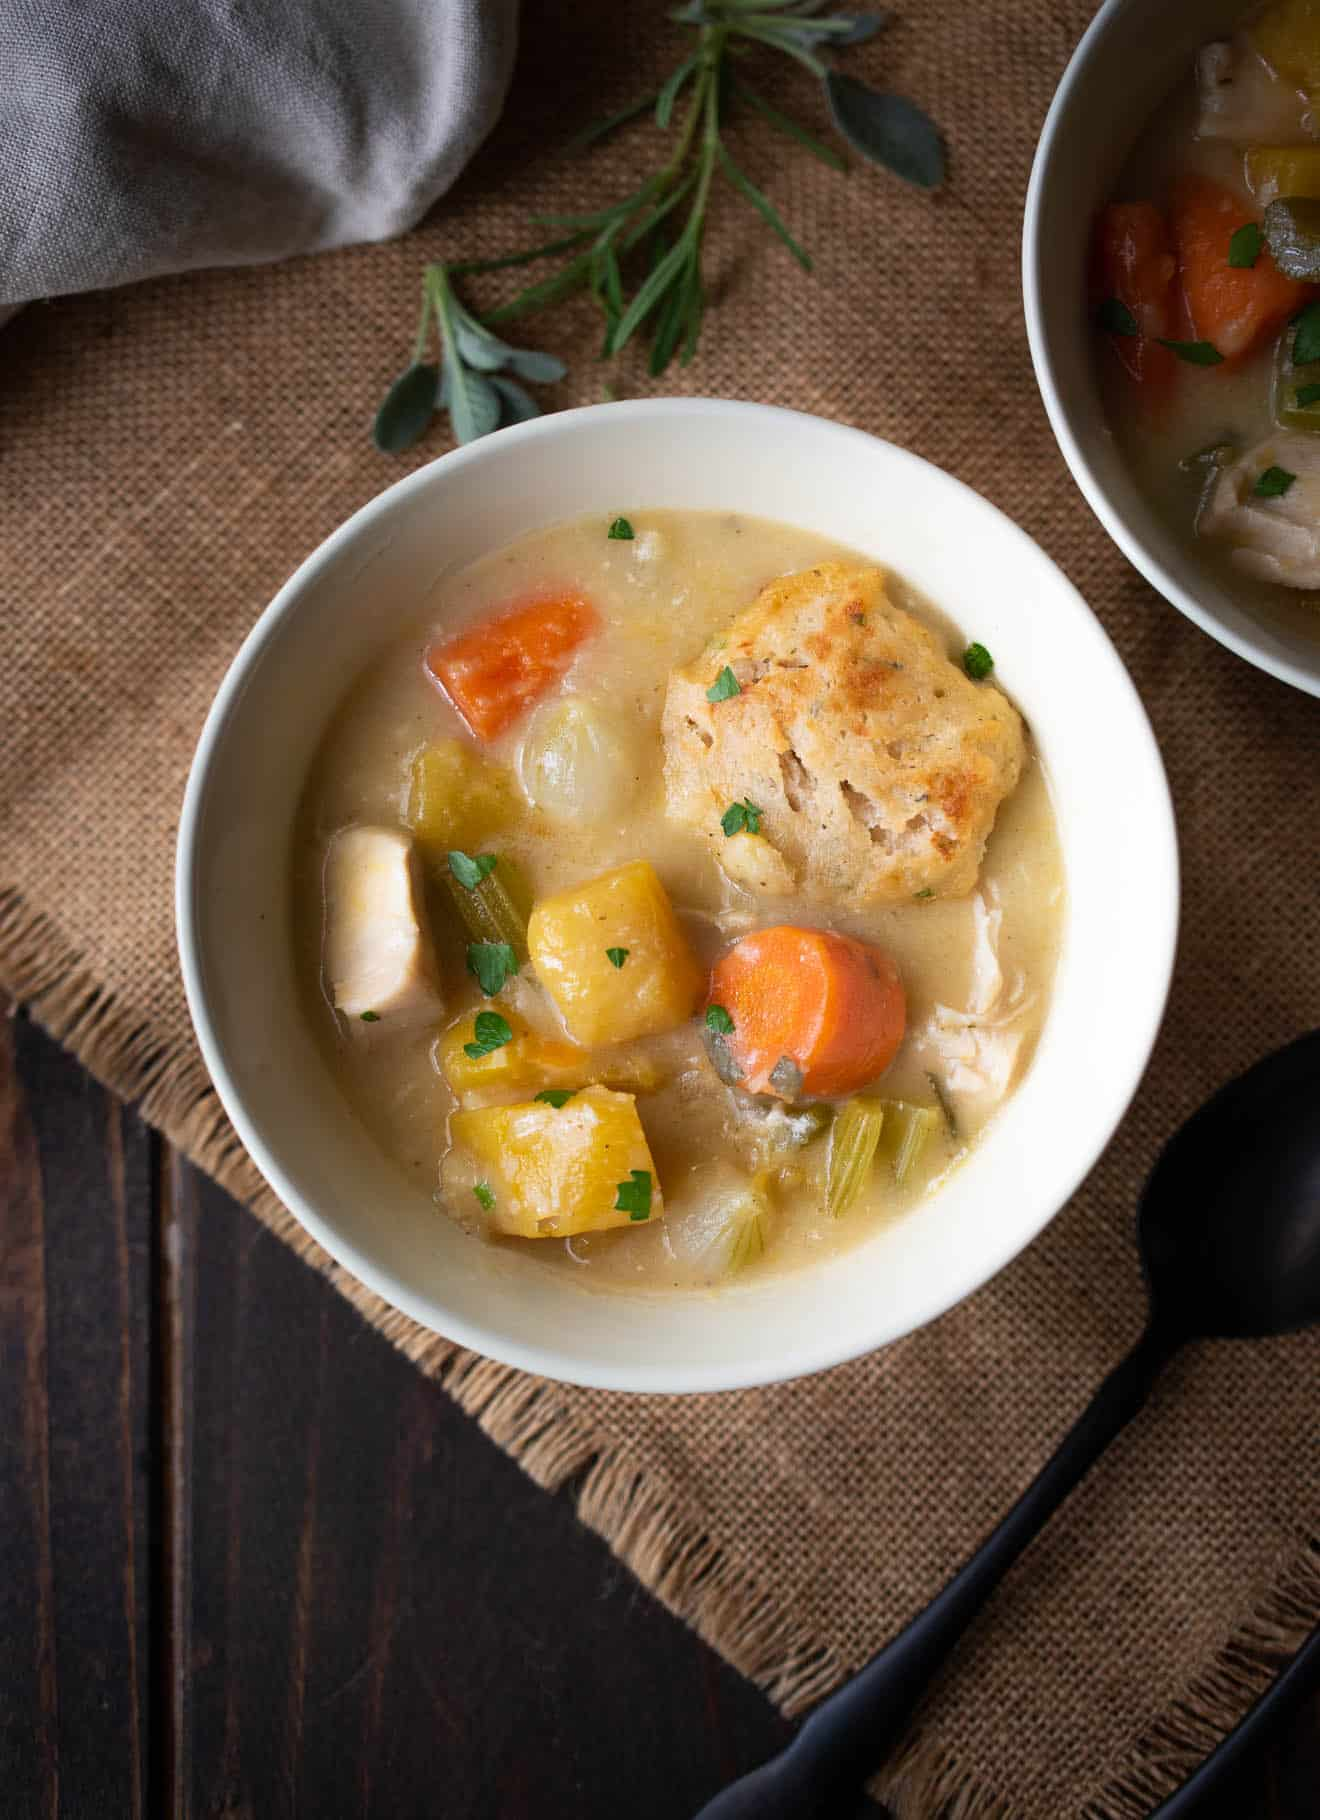 Creamy chicken stew with sage and chive dumplings in a bowl with a spoon